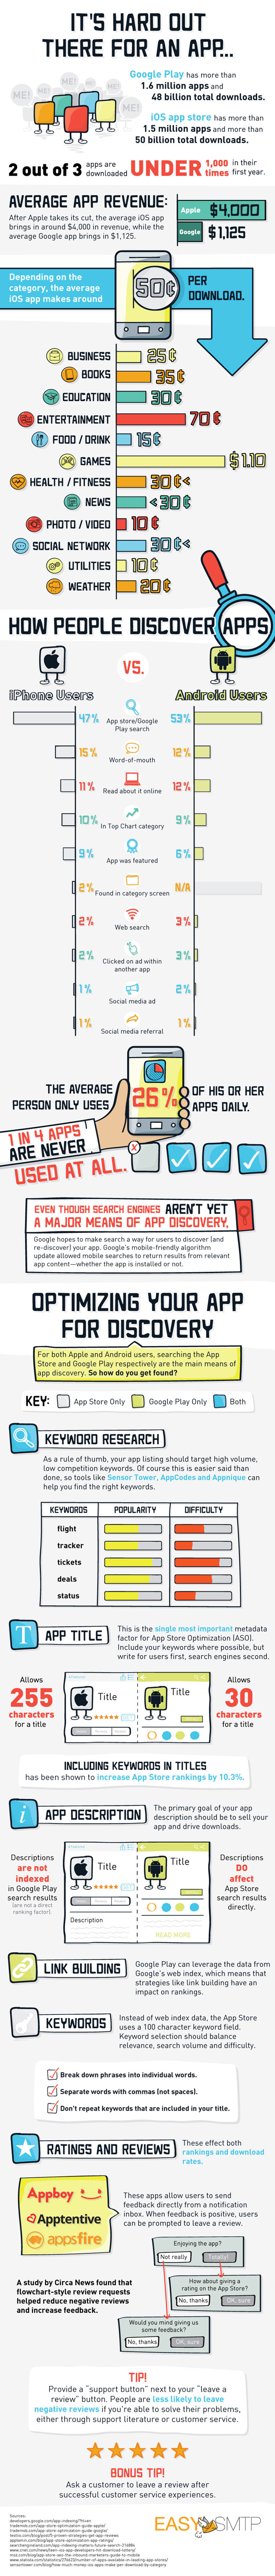 App Store Optimization Guide Infographic